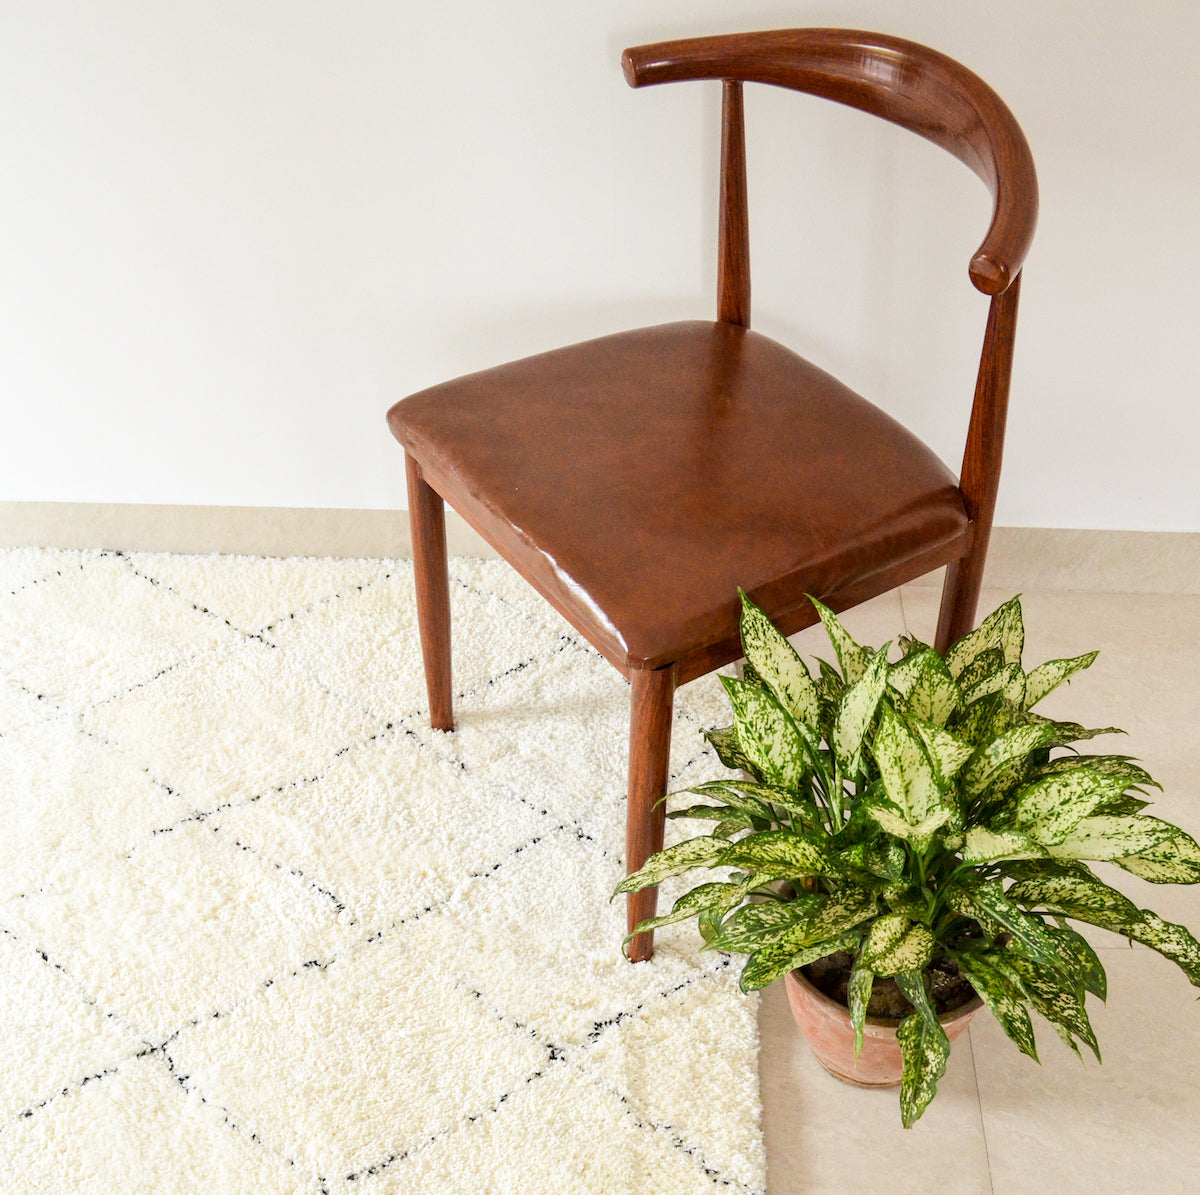 Potted Plant and rug